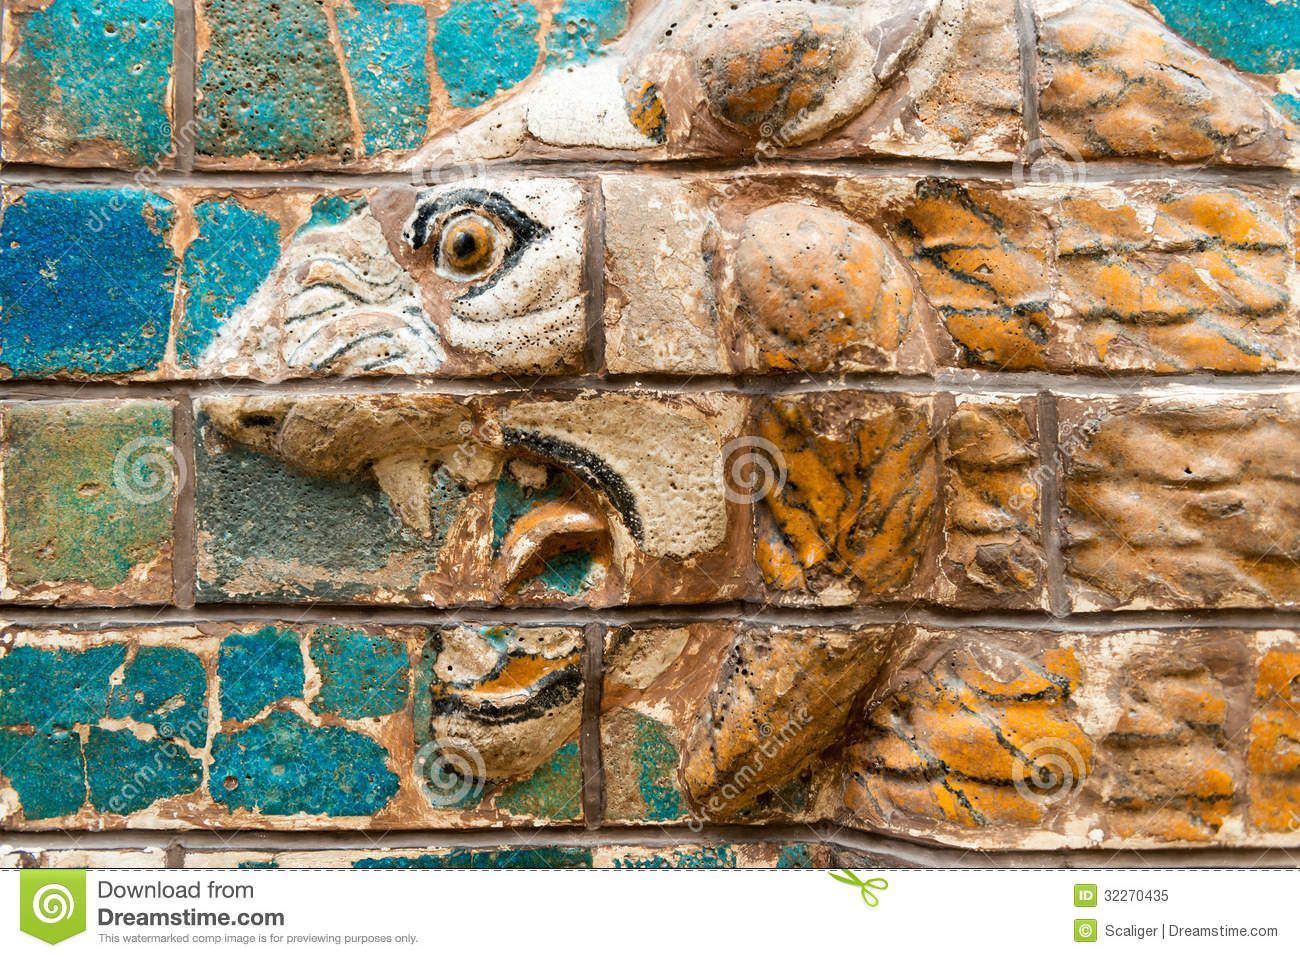 Image from http://thumbs.dreamstime.com/z/fragment-babylonian-ishtar-gate-archaeology-museum-museums-may-istanbul-turkey-babylon-were-32270435.jpg.